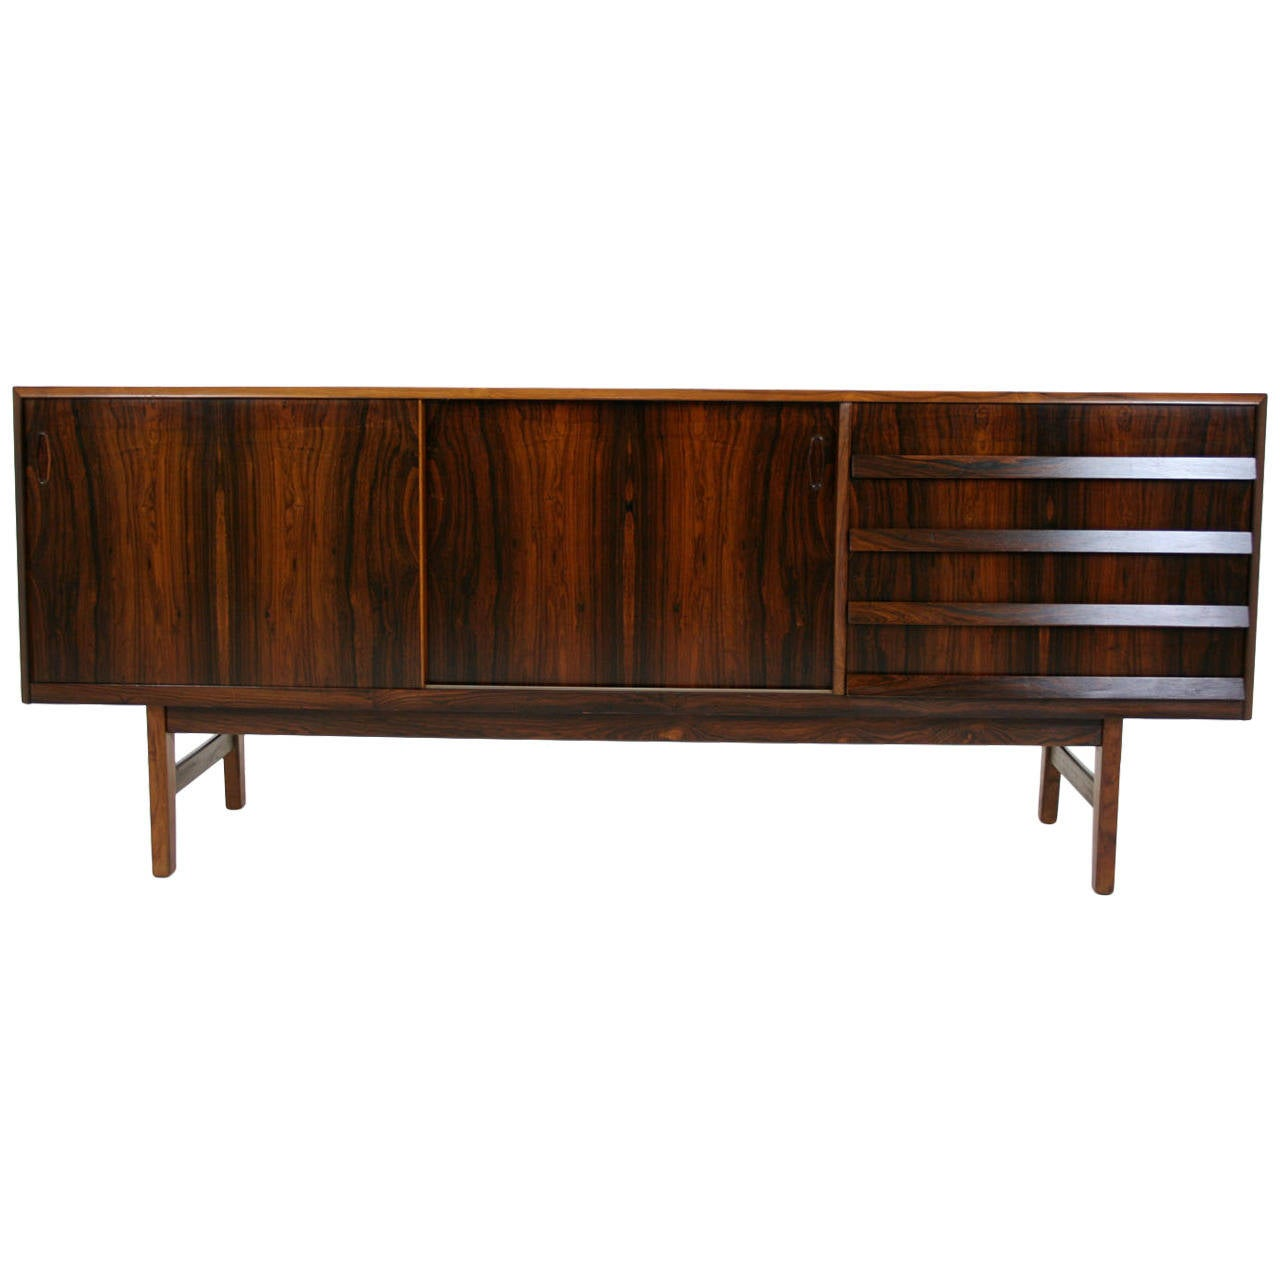 danish mid century modern rosewood credenza or sideboard at 1stdibs. Black Bedroom Furniture Sets. Home Design Ideas